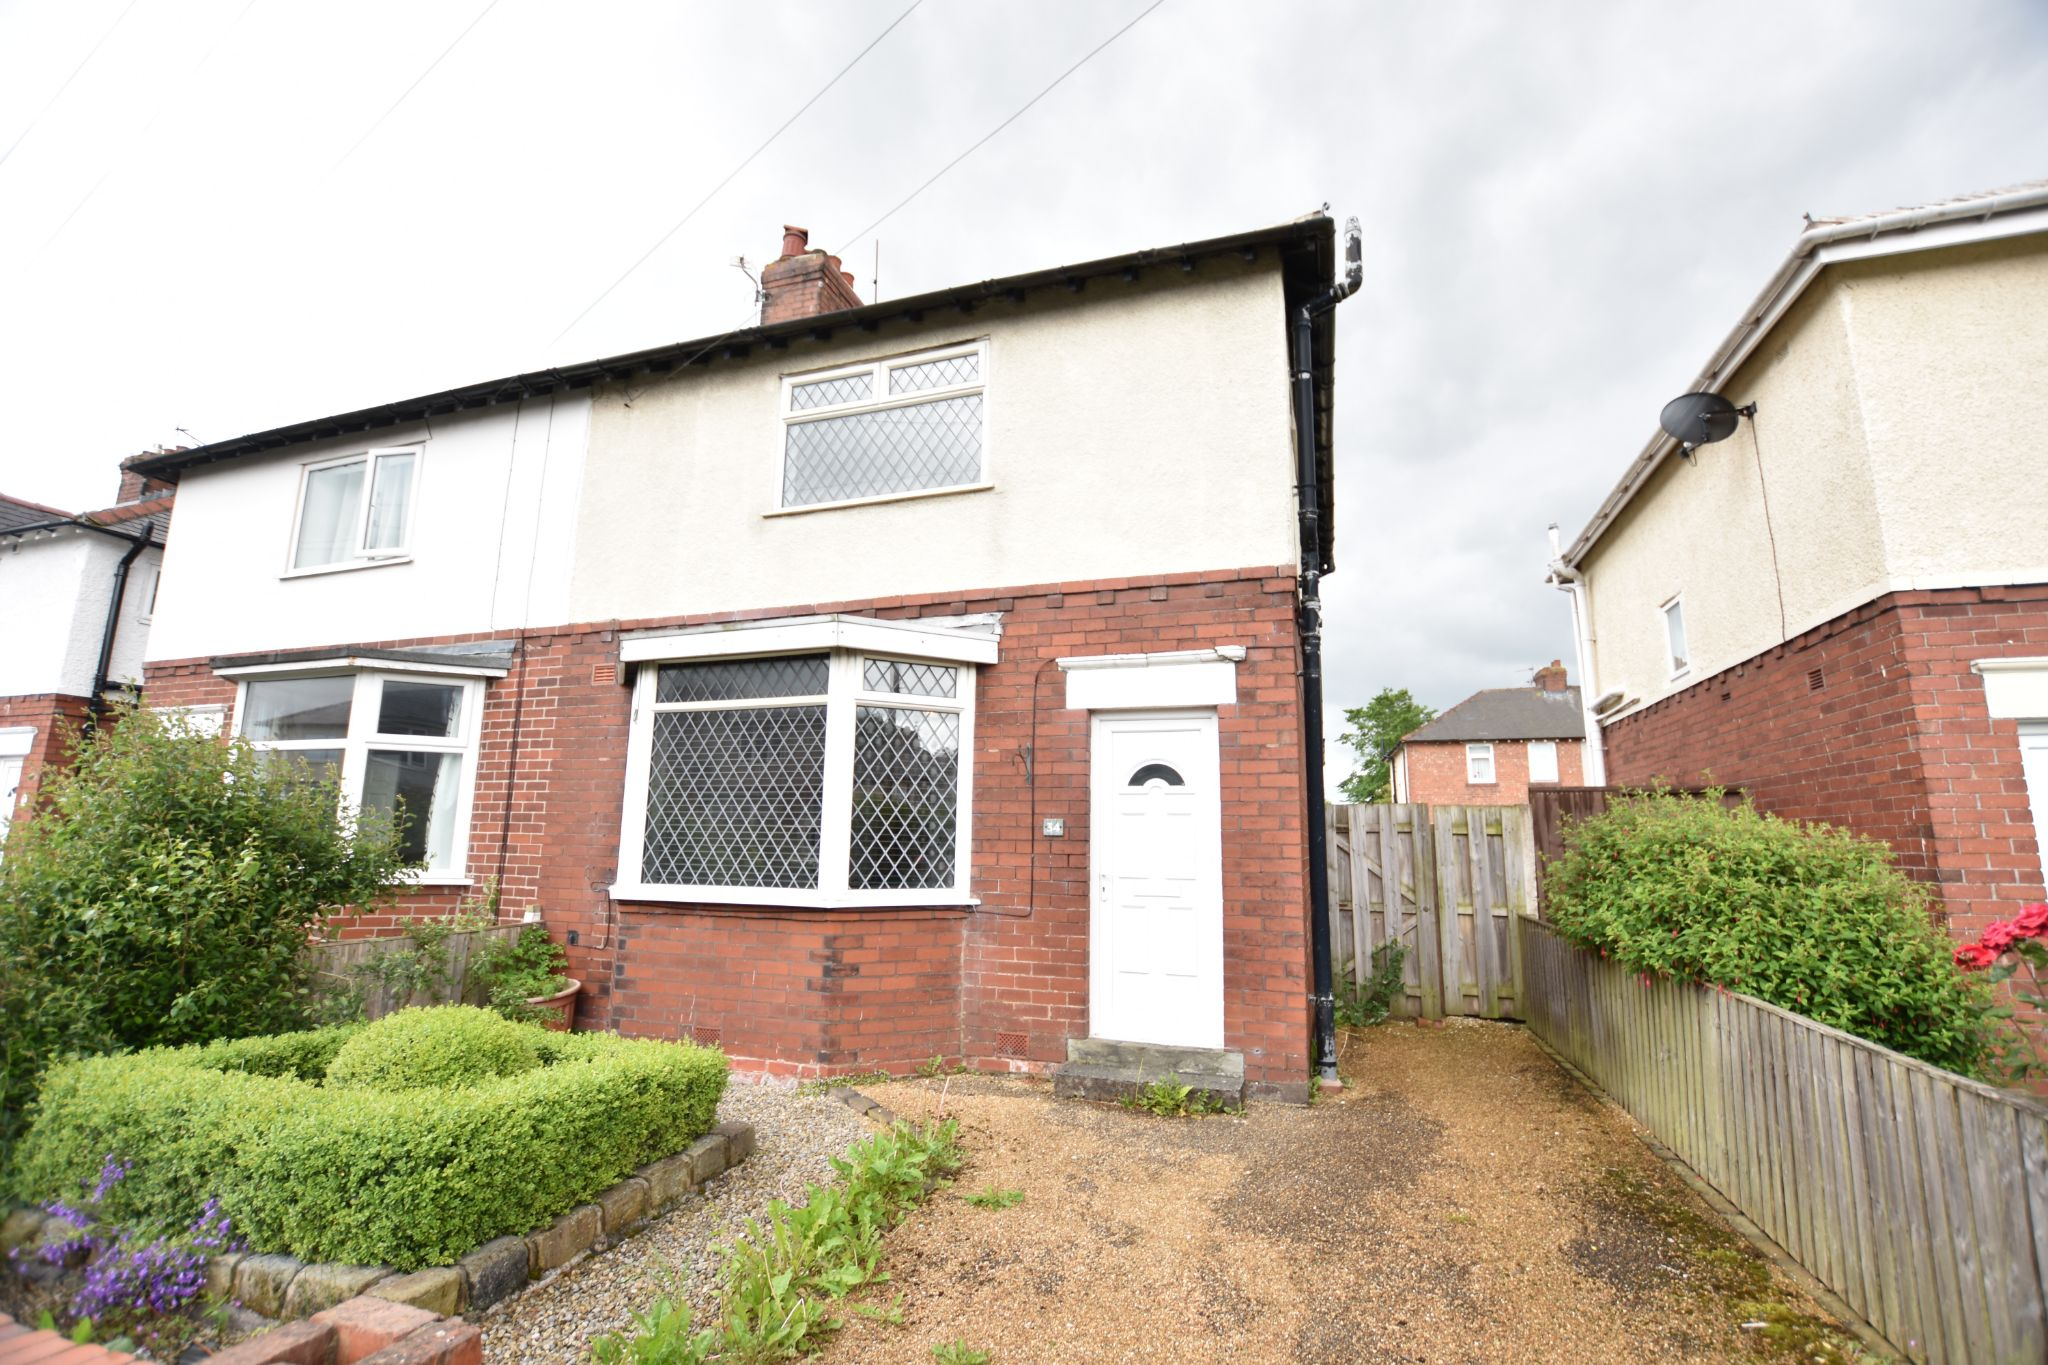 3 bedroom semi-detached house Let Agreed in Lytham - Property photograph